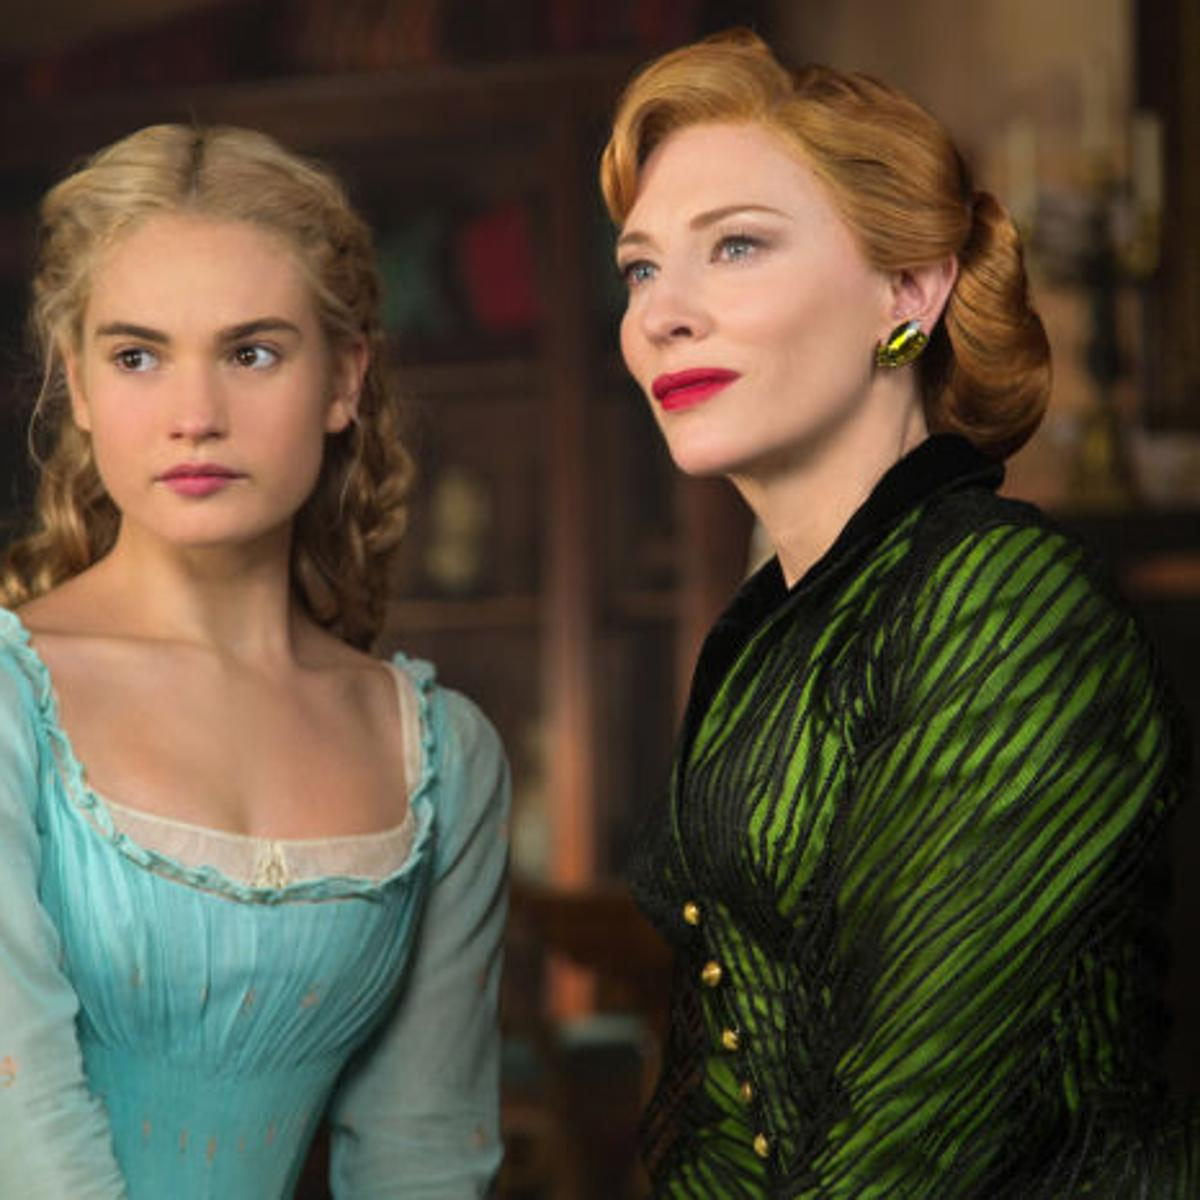 Review Cinderella Gets Much Of Its Magic From Cate Blanchett Movies Siouxcityjournal Com